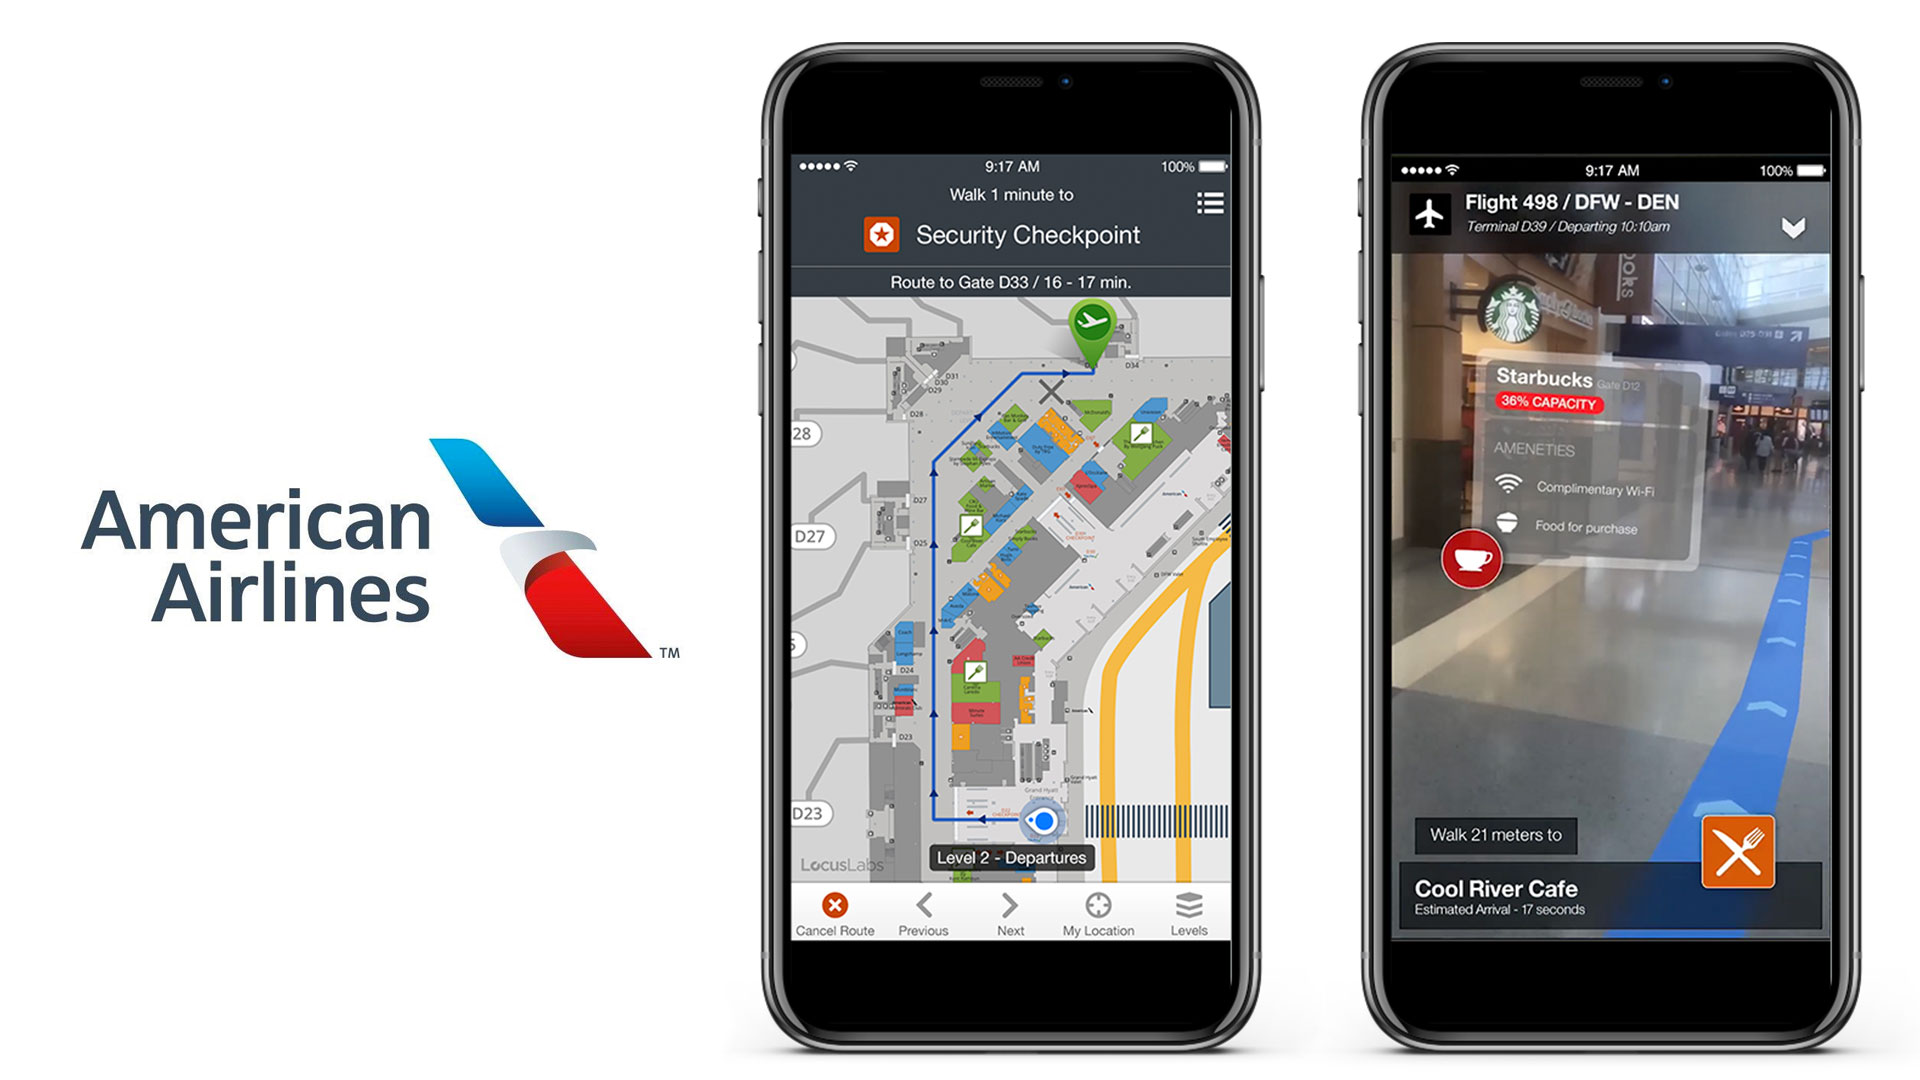 American Airlines AR Wayfinding